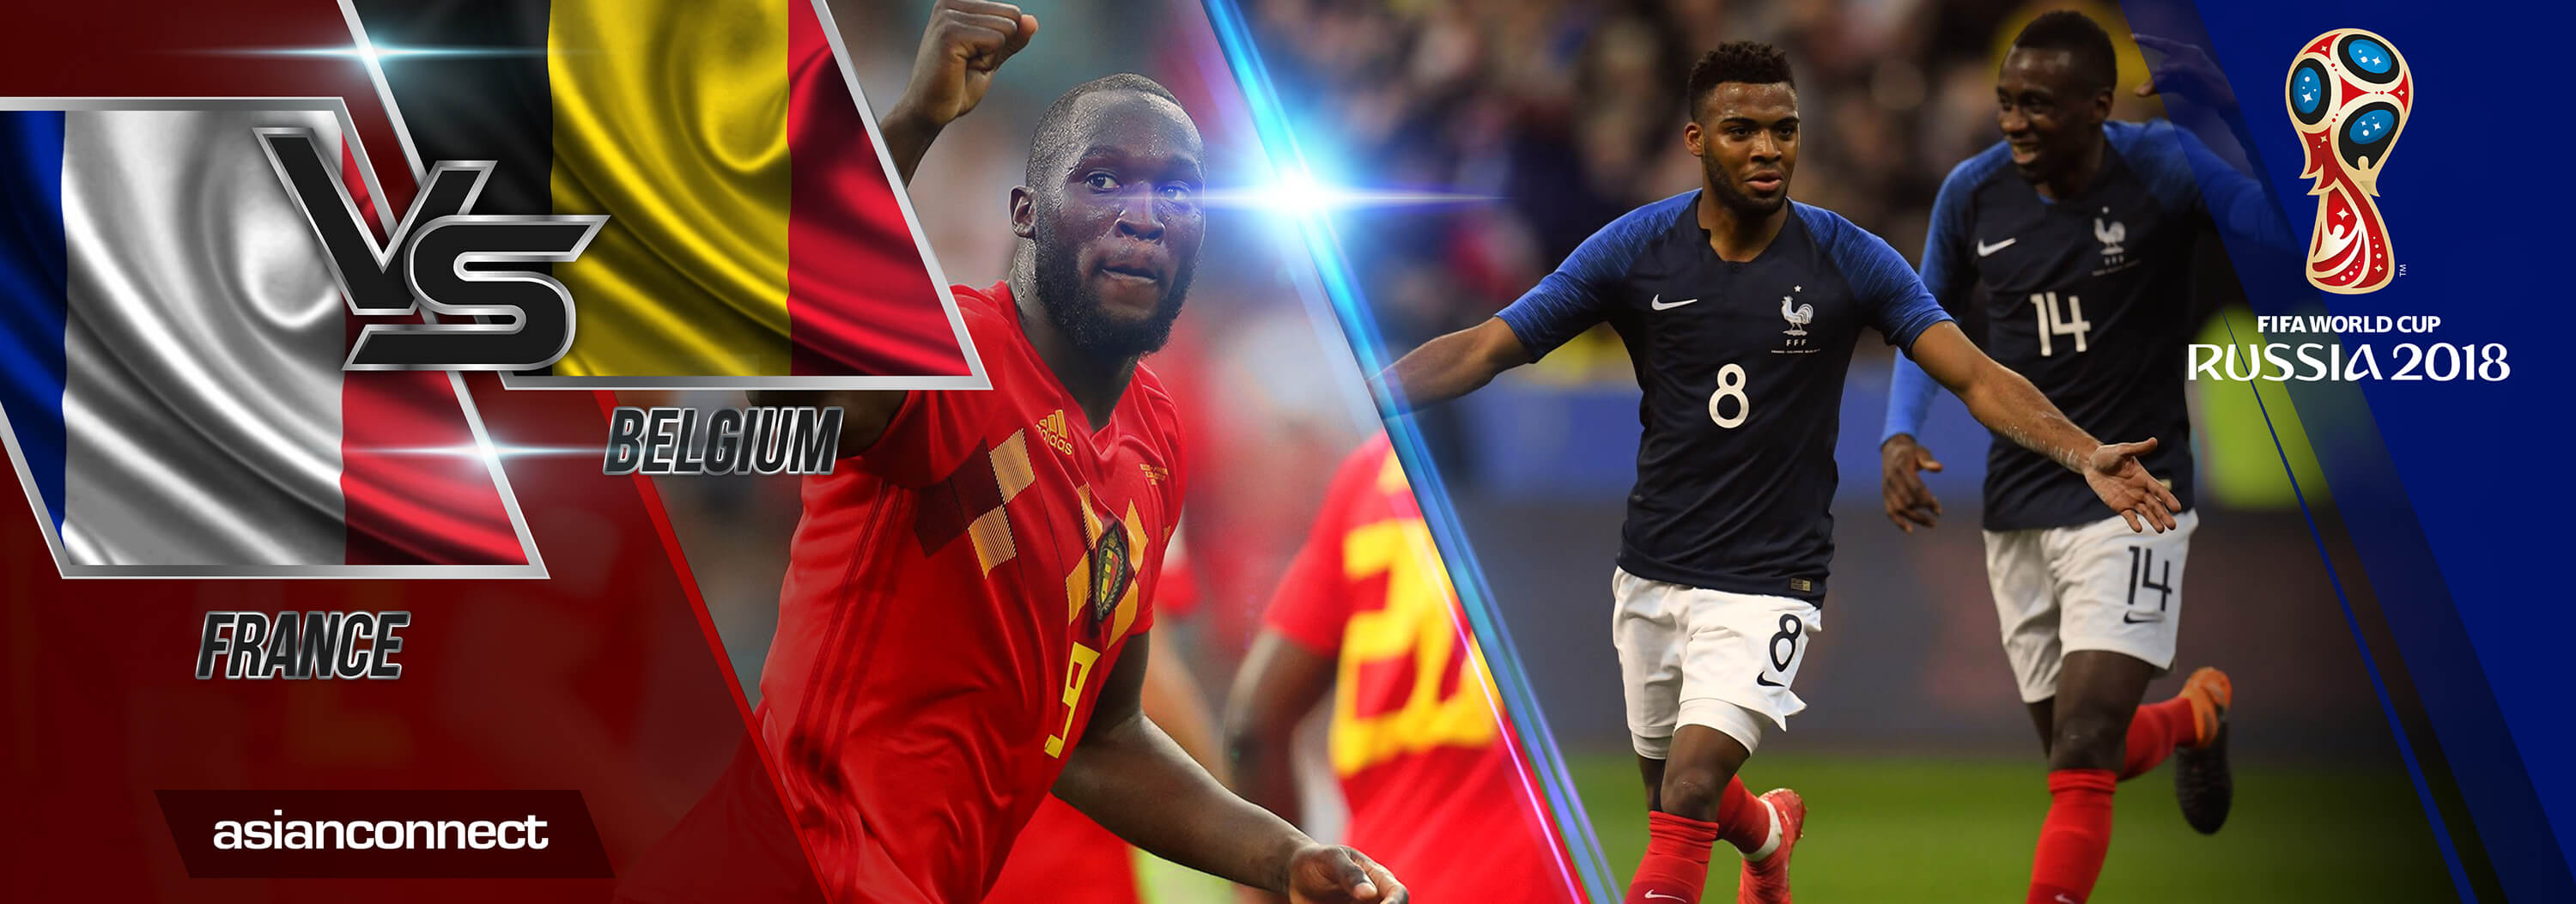 World Cup 2018 France vs Belgium